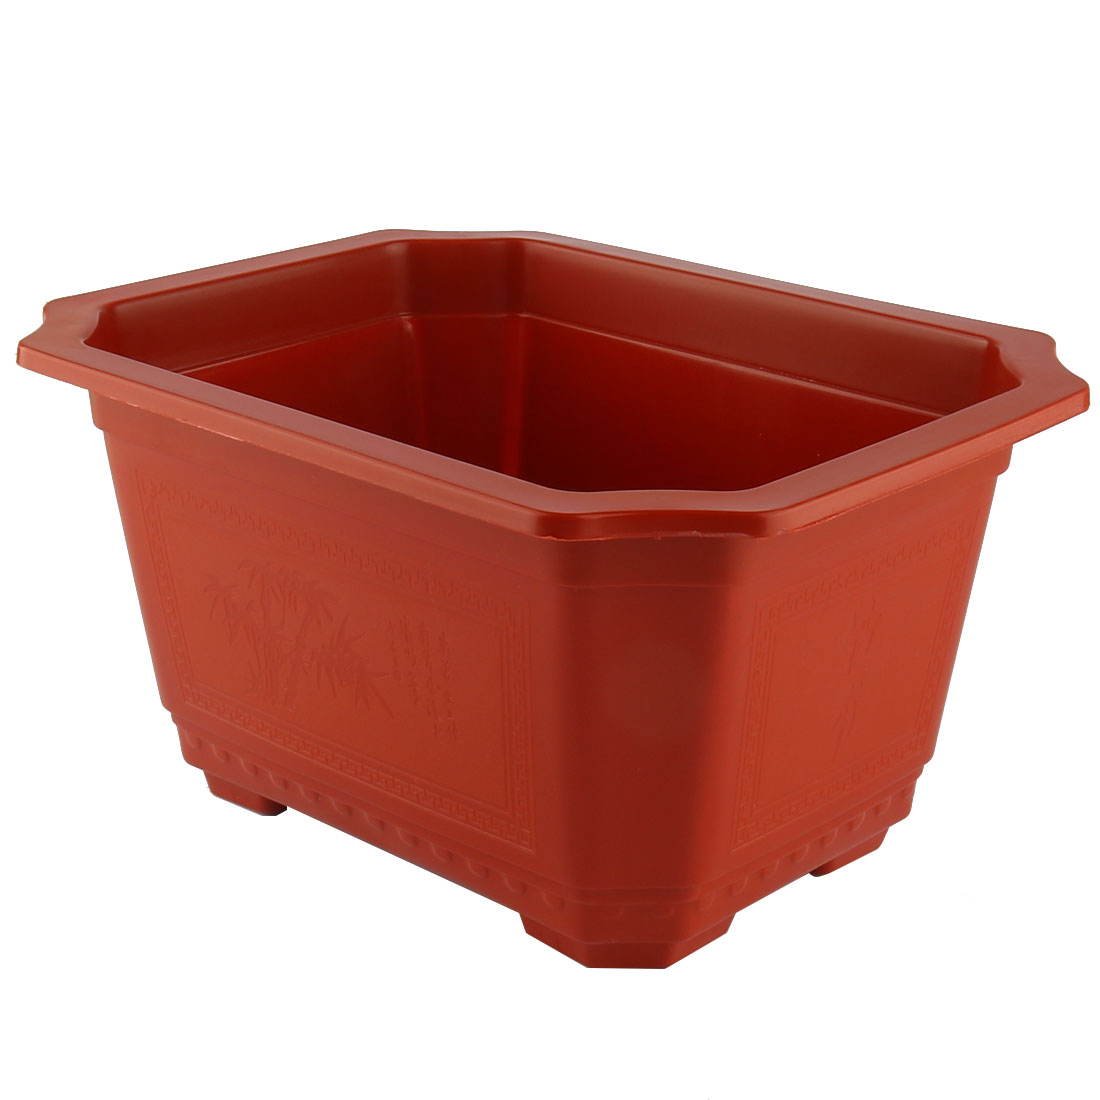 Plastic Rectangle Shaped Office Home Garden Window Decor Plant Flower Pot Red